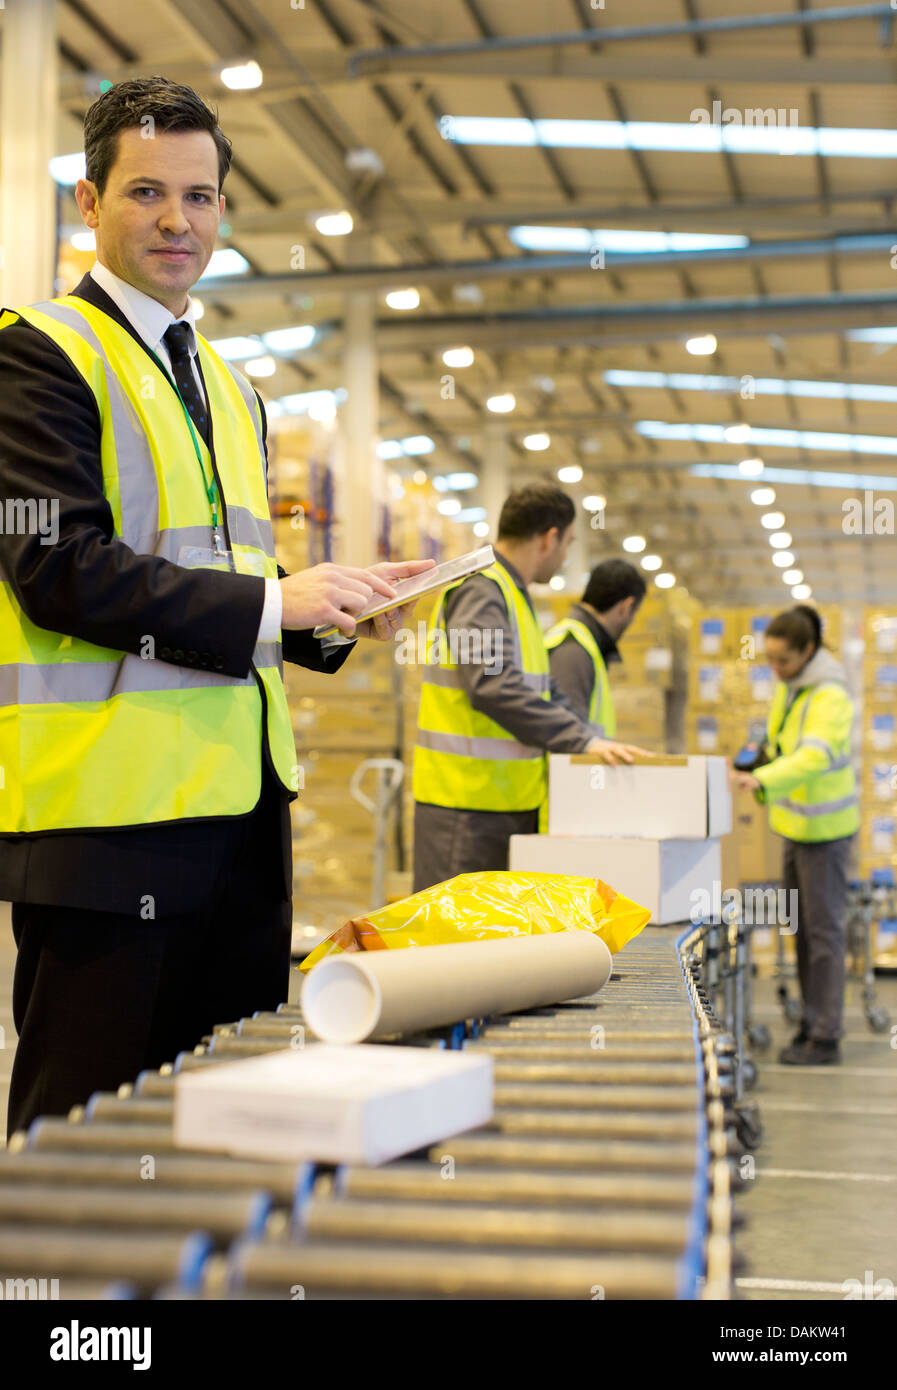 Workers checking packages on conveyor belt in warehouse - Stock Image